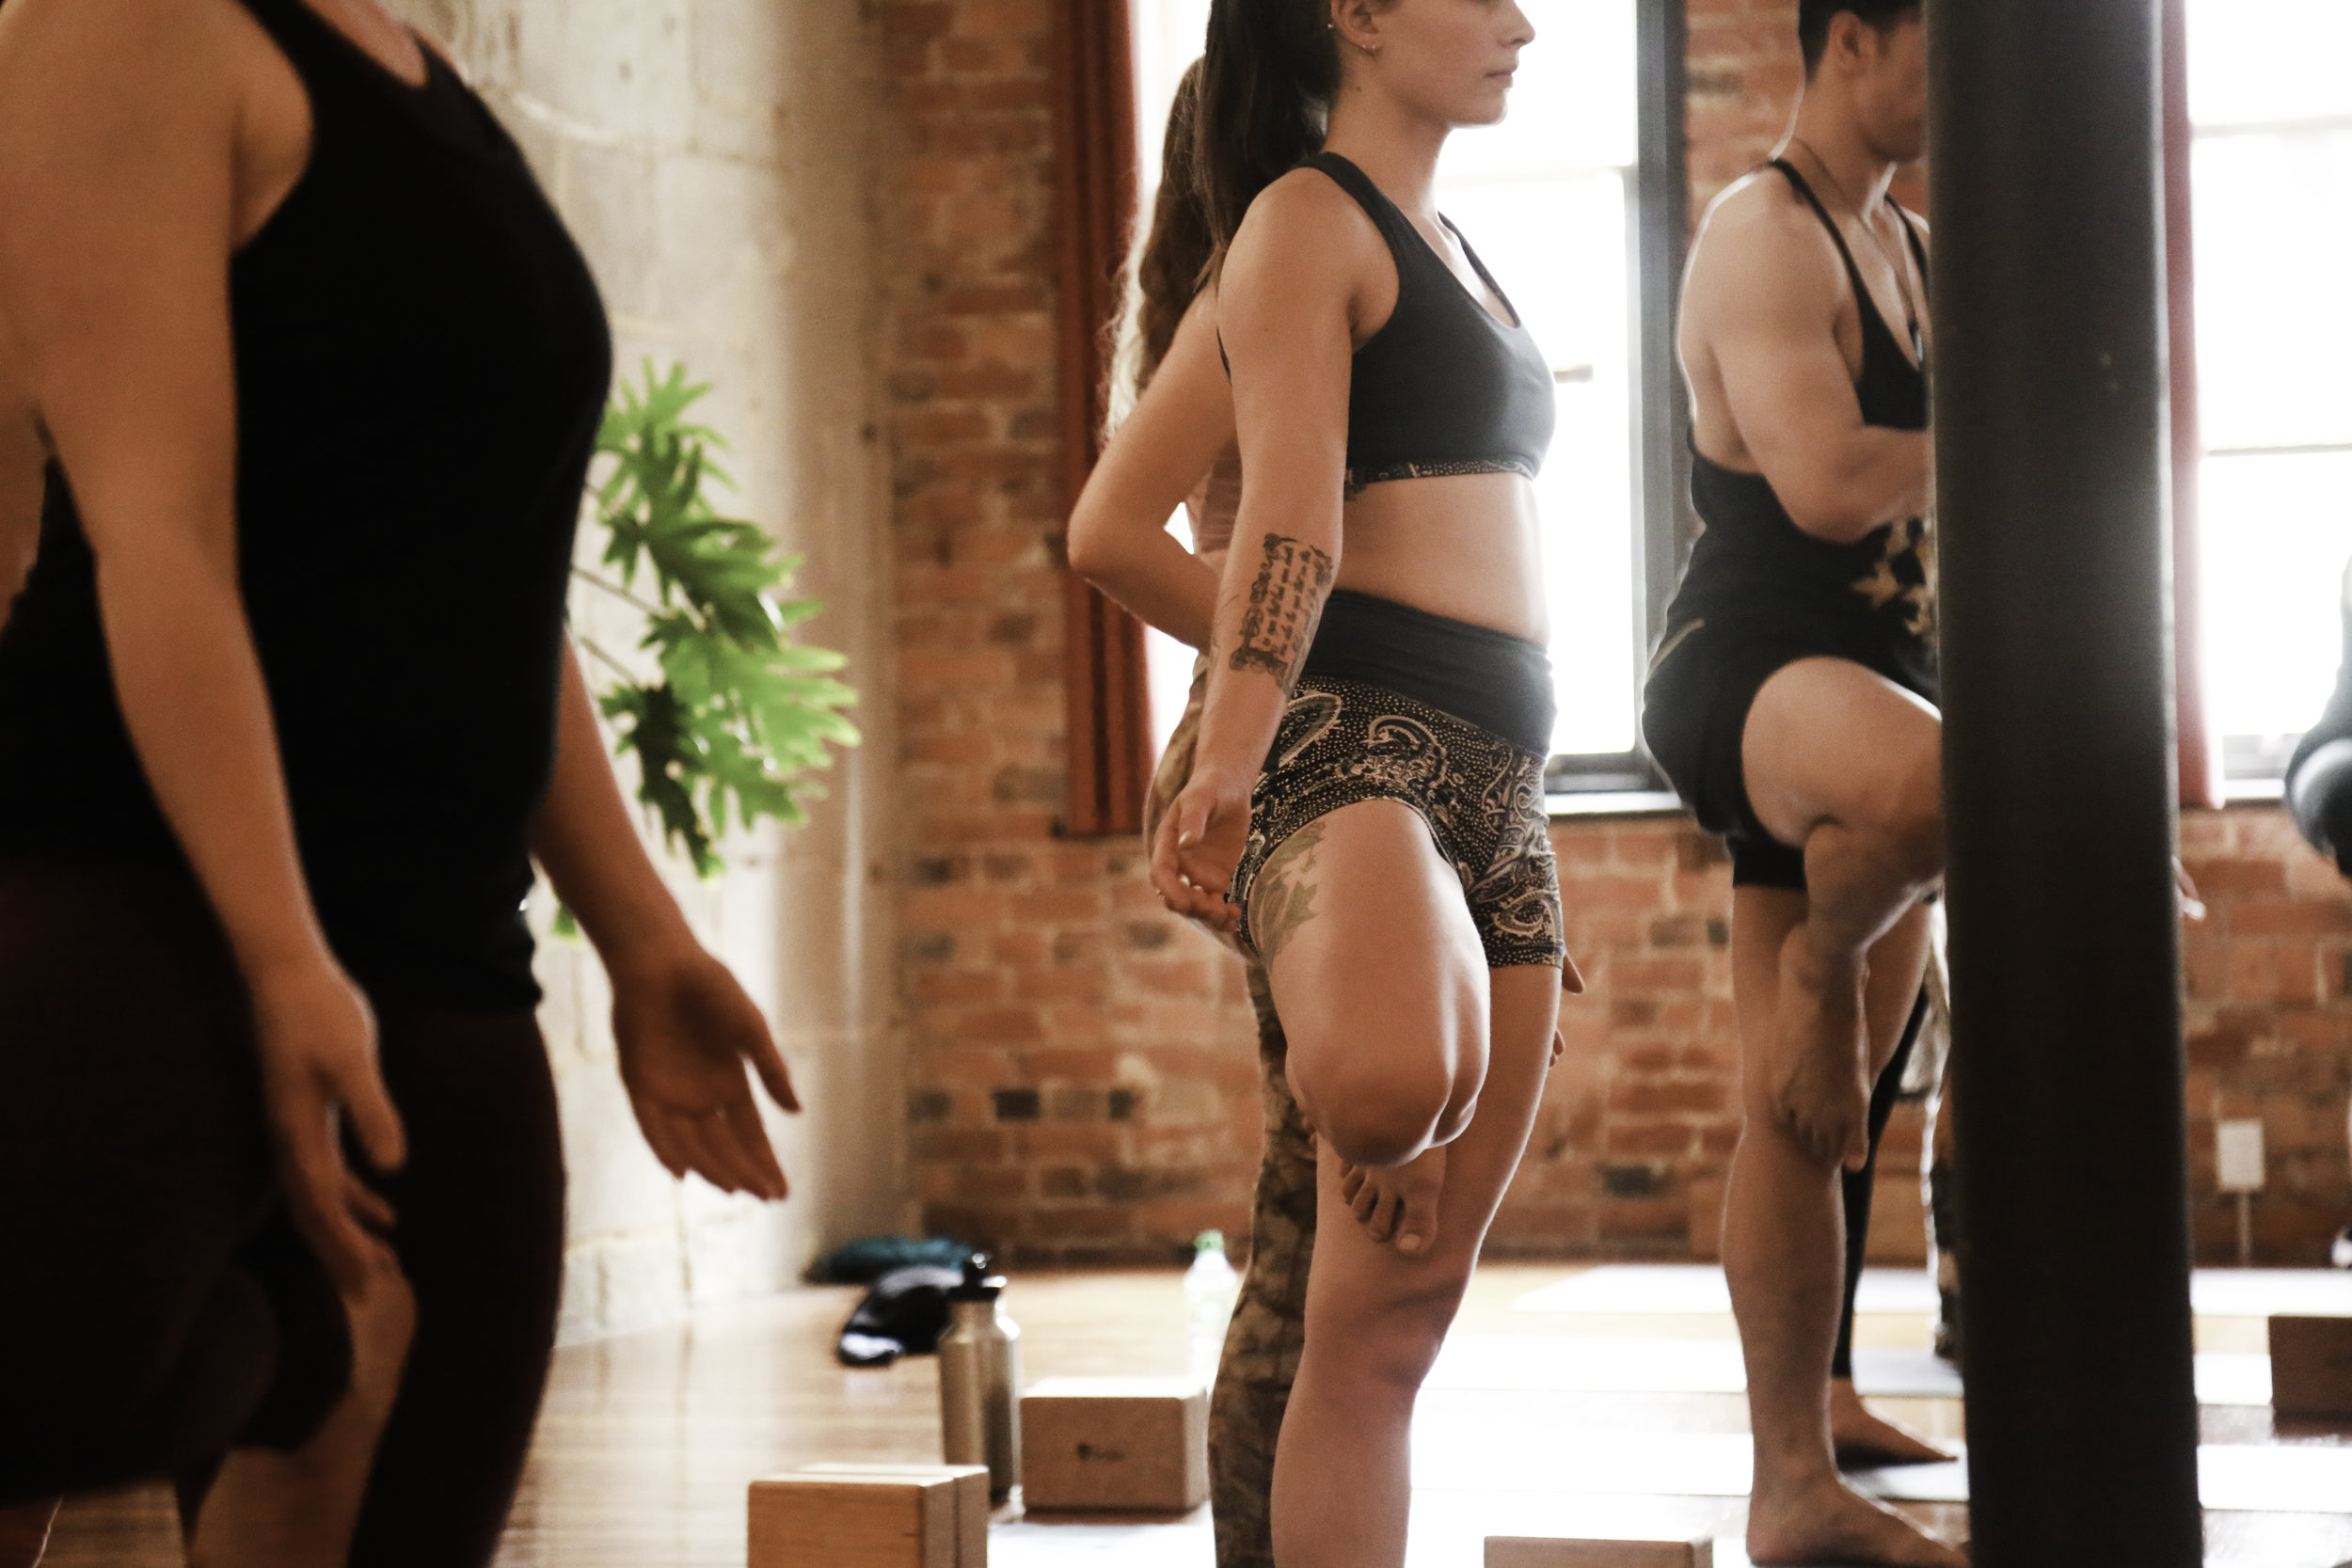 $49 for 30 days of unlimited yoga - For newcomers to Studio Tula onlyGet Yours Here